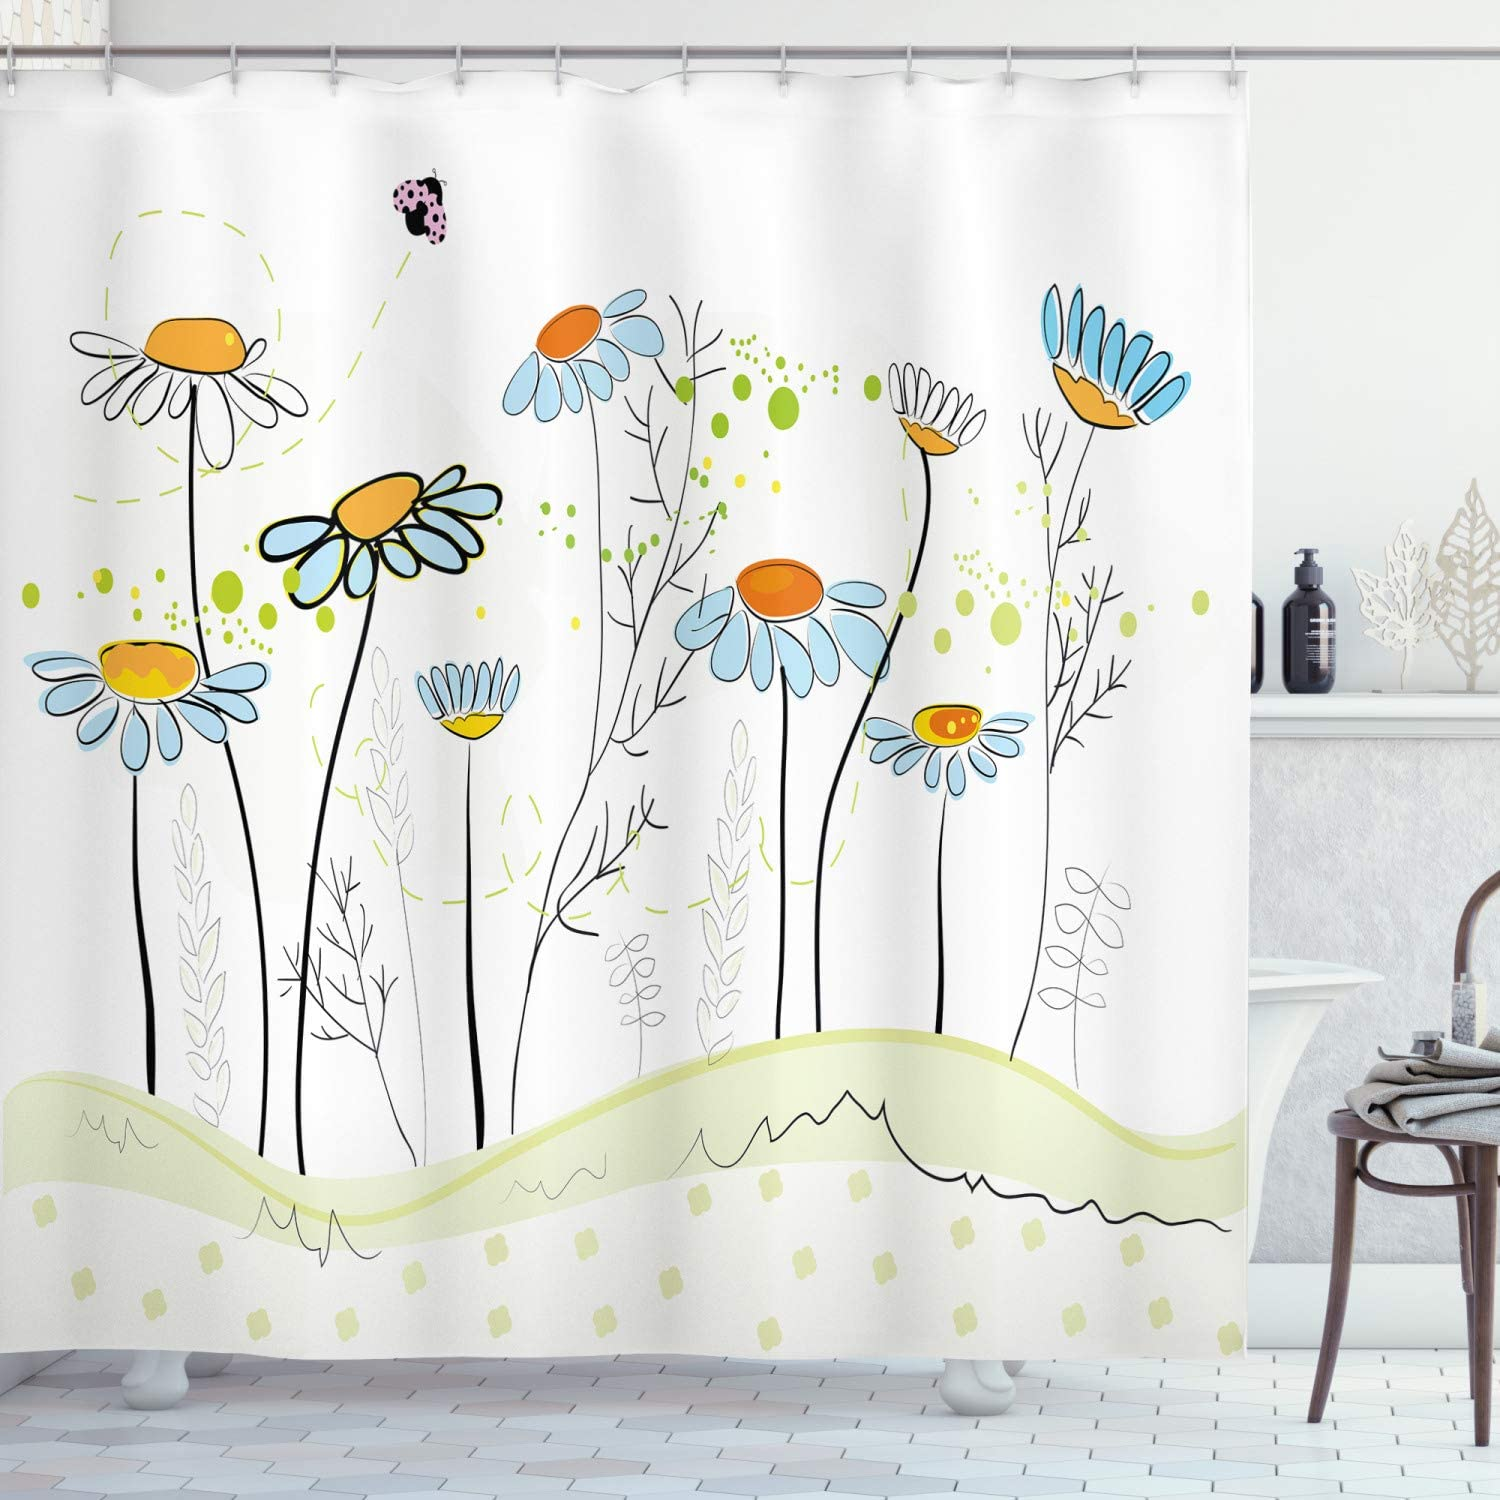 Ambesonne Floral Shower Curtain Gardening Theme Daisy Flowers In Spring Illustration Romantic Design Cloth Fabric Bathroom Decor Set With Hooks 70 Long Yellow Blue Home Kitchen